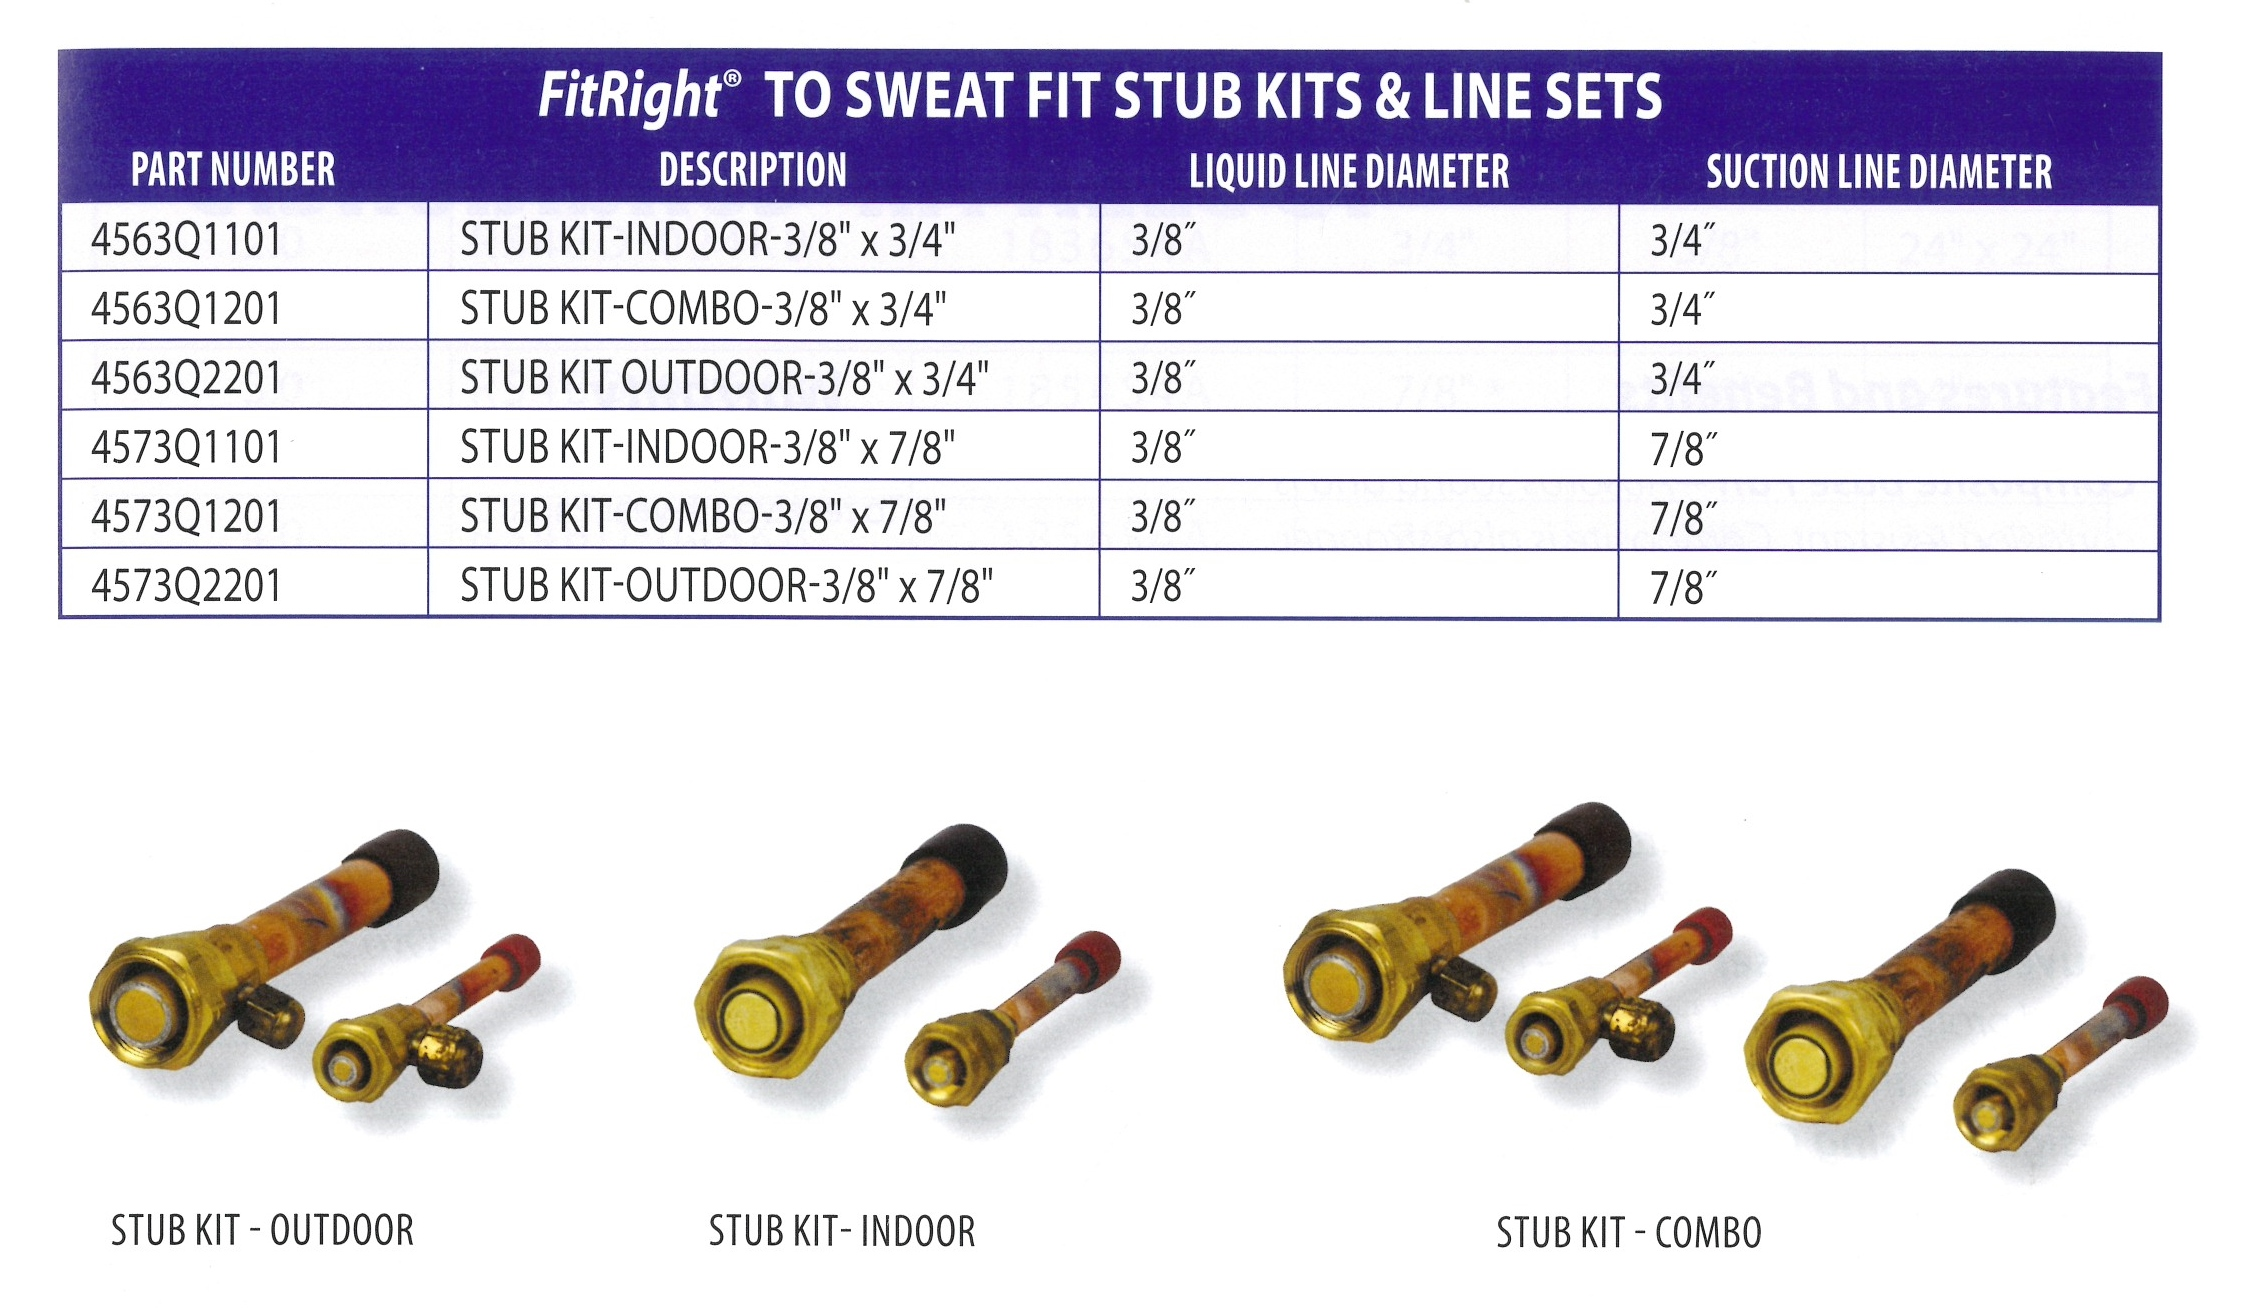 FitRight To Sweat Fit Stub Kits & Line Sets